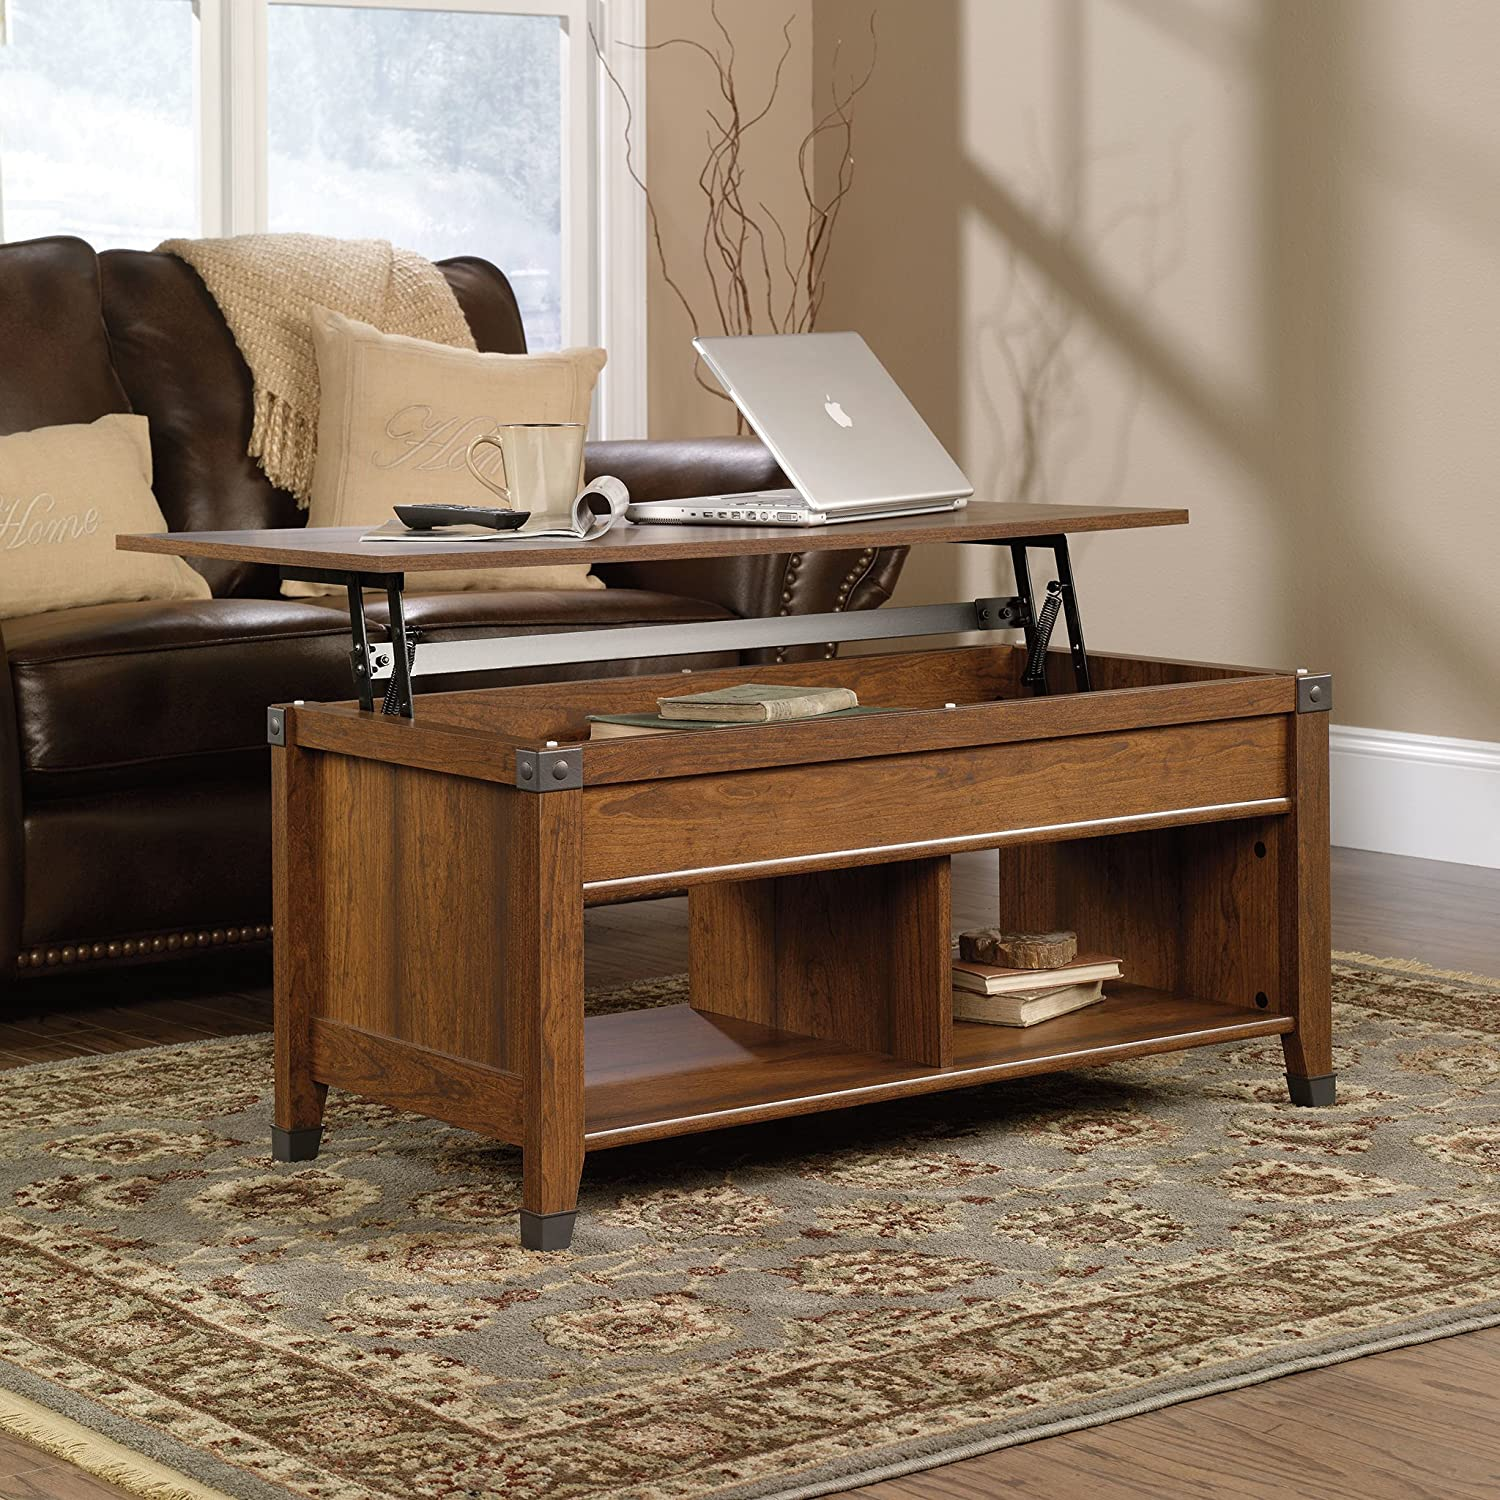 Amazoncom Lift Top Coffee Table With Hidden Storage Area Under - Lift top coffee table with storage